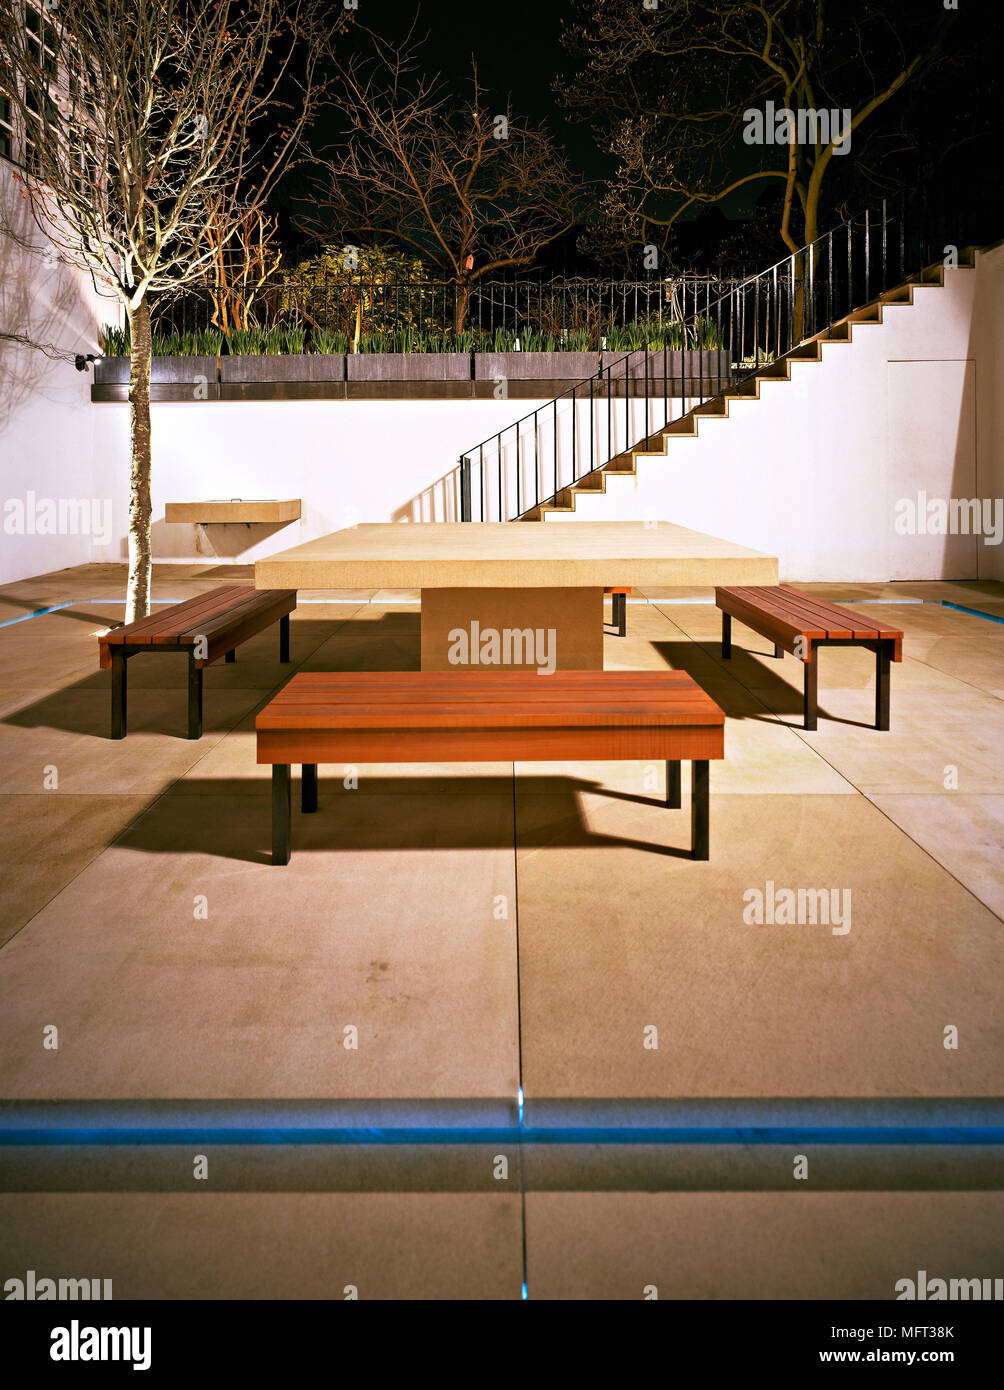 Modern Paved Patio Area Table Bench Seating Terraces Patios Outdoor Outside  Furniture Paving Slabs Town